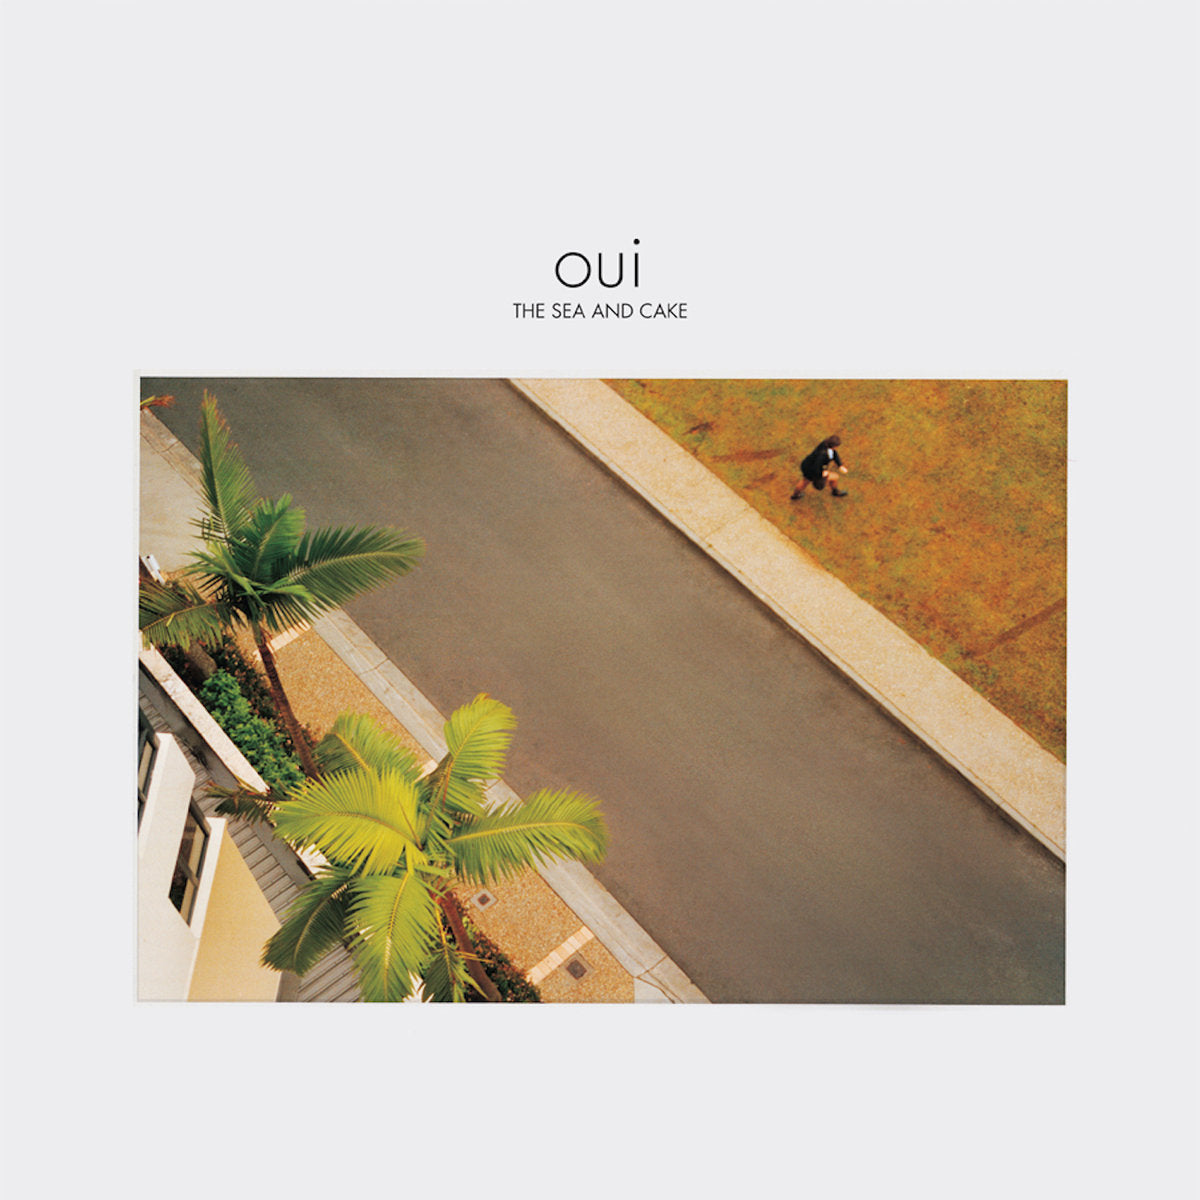 The Sea and Cake - Oui (Yellow and White Vinyl)